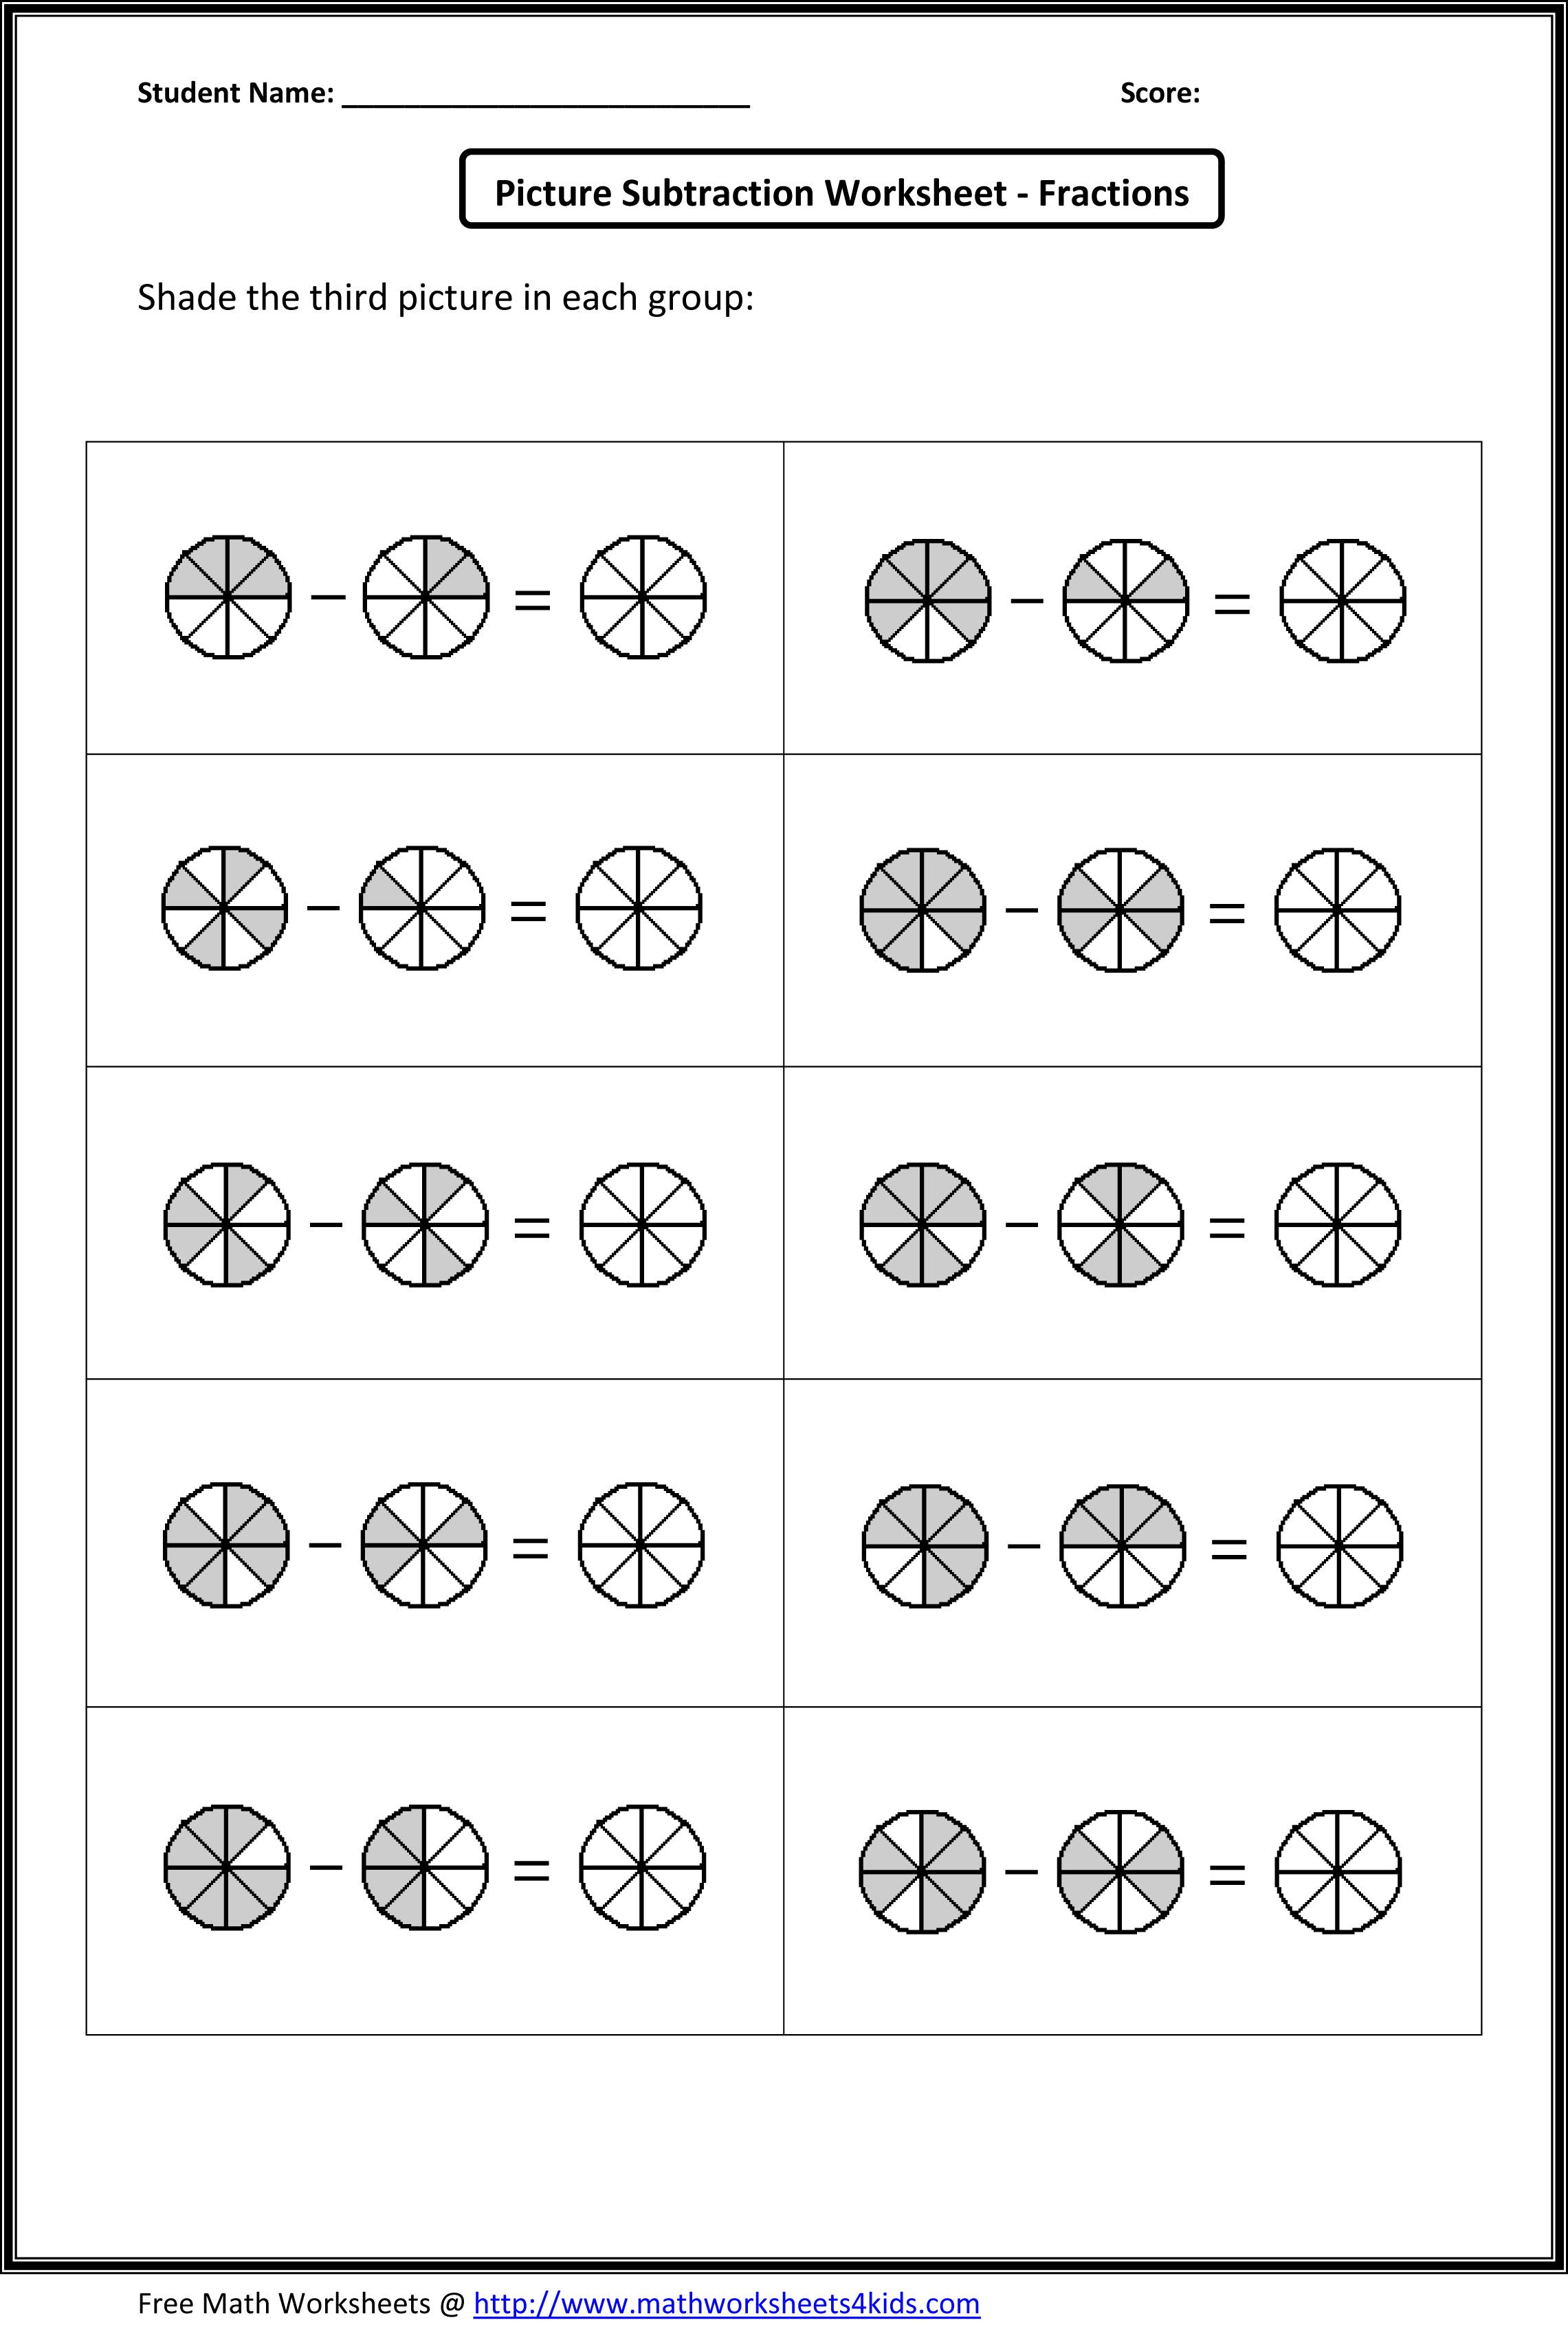 Subtracting Fractions Worksheets Con Imagenes